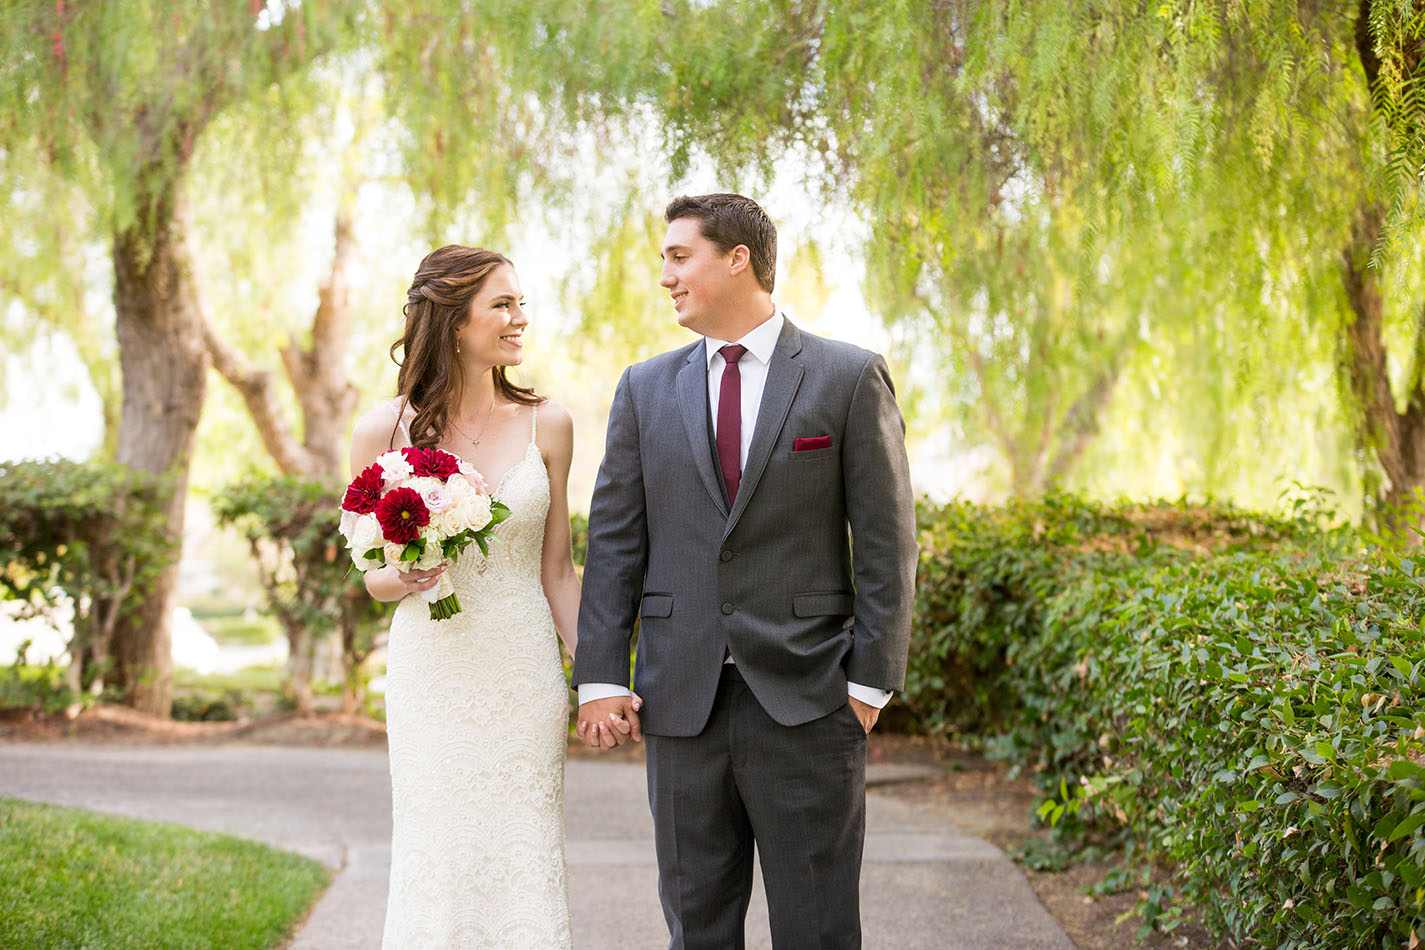 The property features shady weeping willow trees, lush greens, and flower gardens for a romantic setting